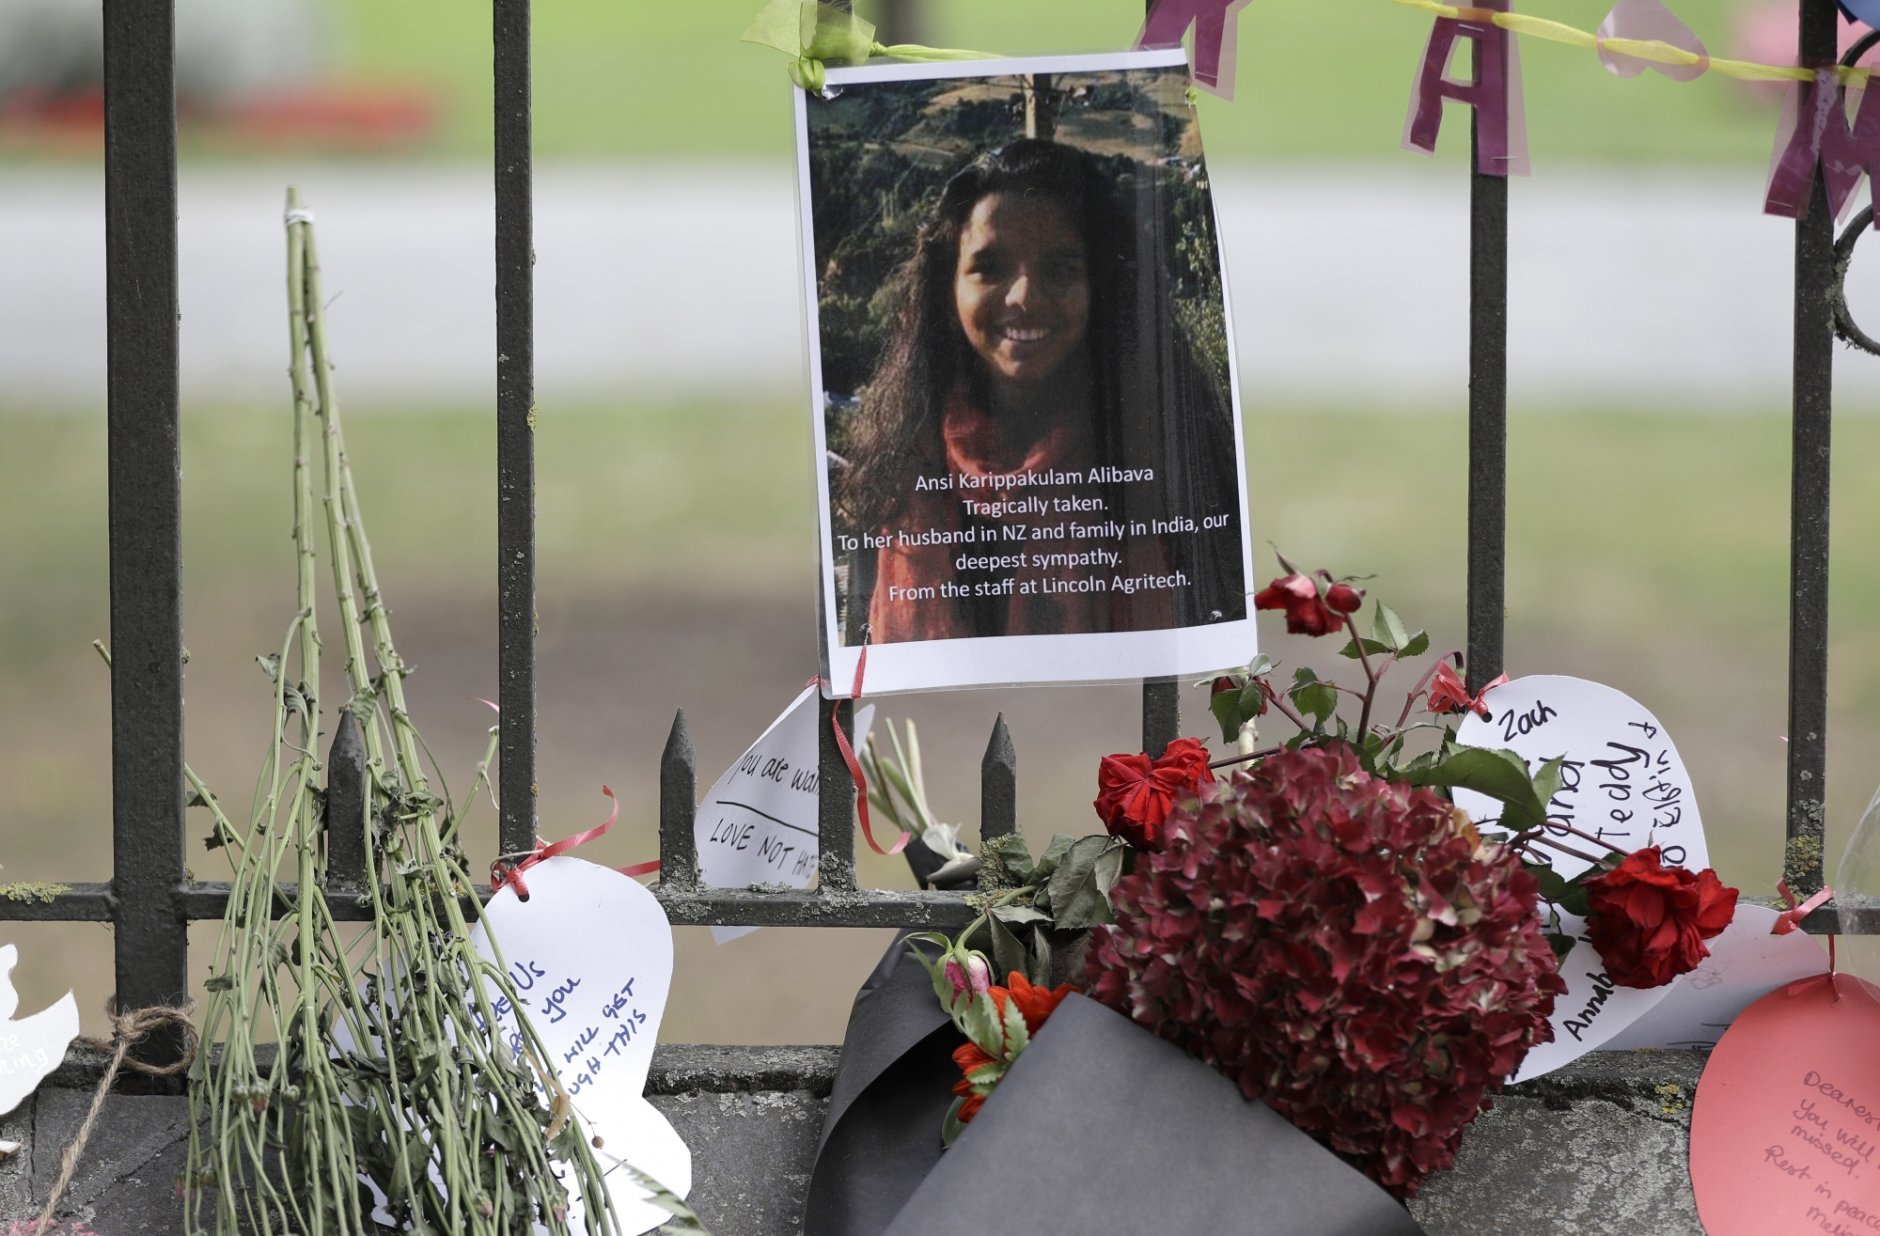 A tribute of a victim of mosque shooting, Ansi Alibava, hangs on a wall at the Botanical Gardens in Christchurch, New Zealand, Thursday, March 21, 2019. Thousands of people were expected to come together for an emotional Friday prayer service led by the imam of one of the two New Zealand mosques where 50 worshippers were killed in a white supremacist attack on Friday March 15. (AP Photo/Mark Baker)